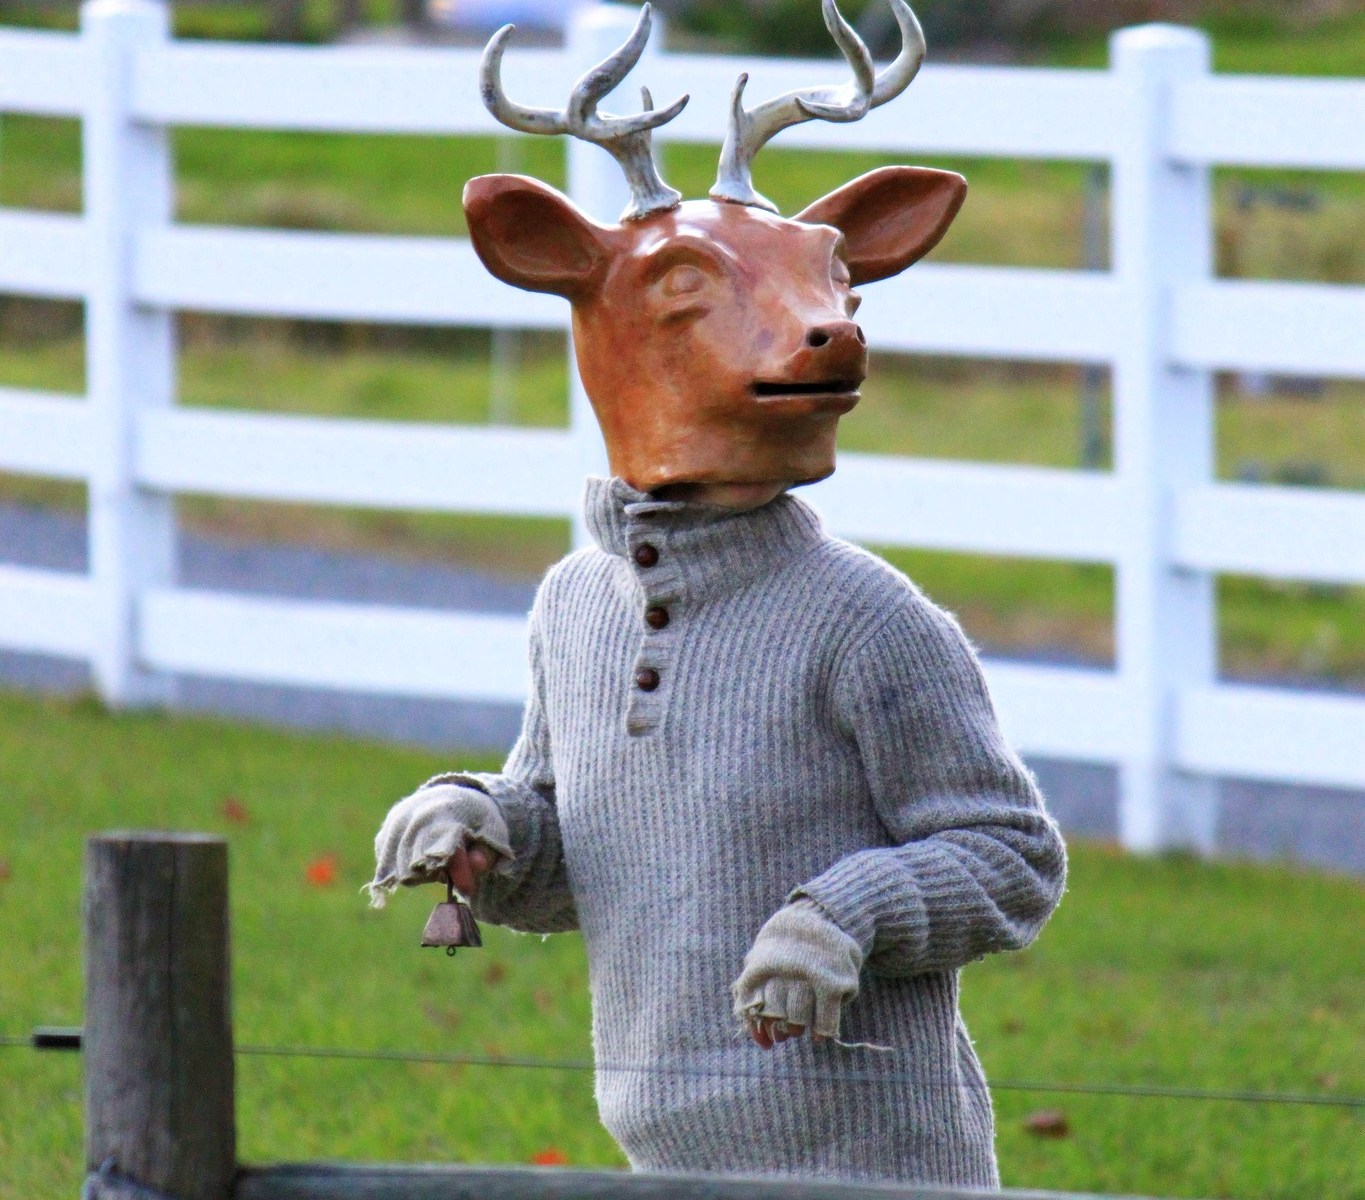 Photo: Deer mask costume